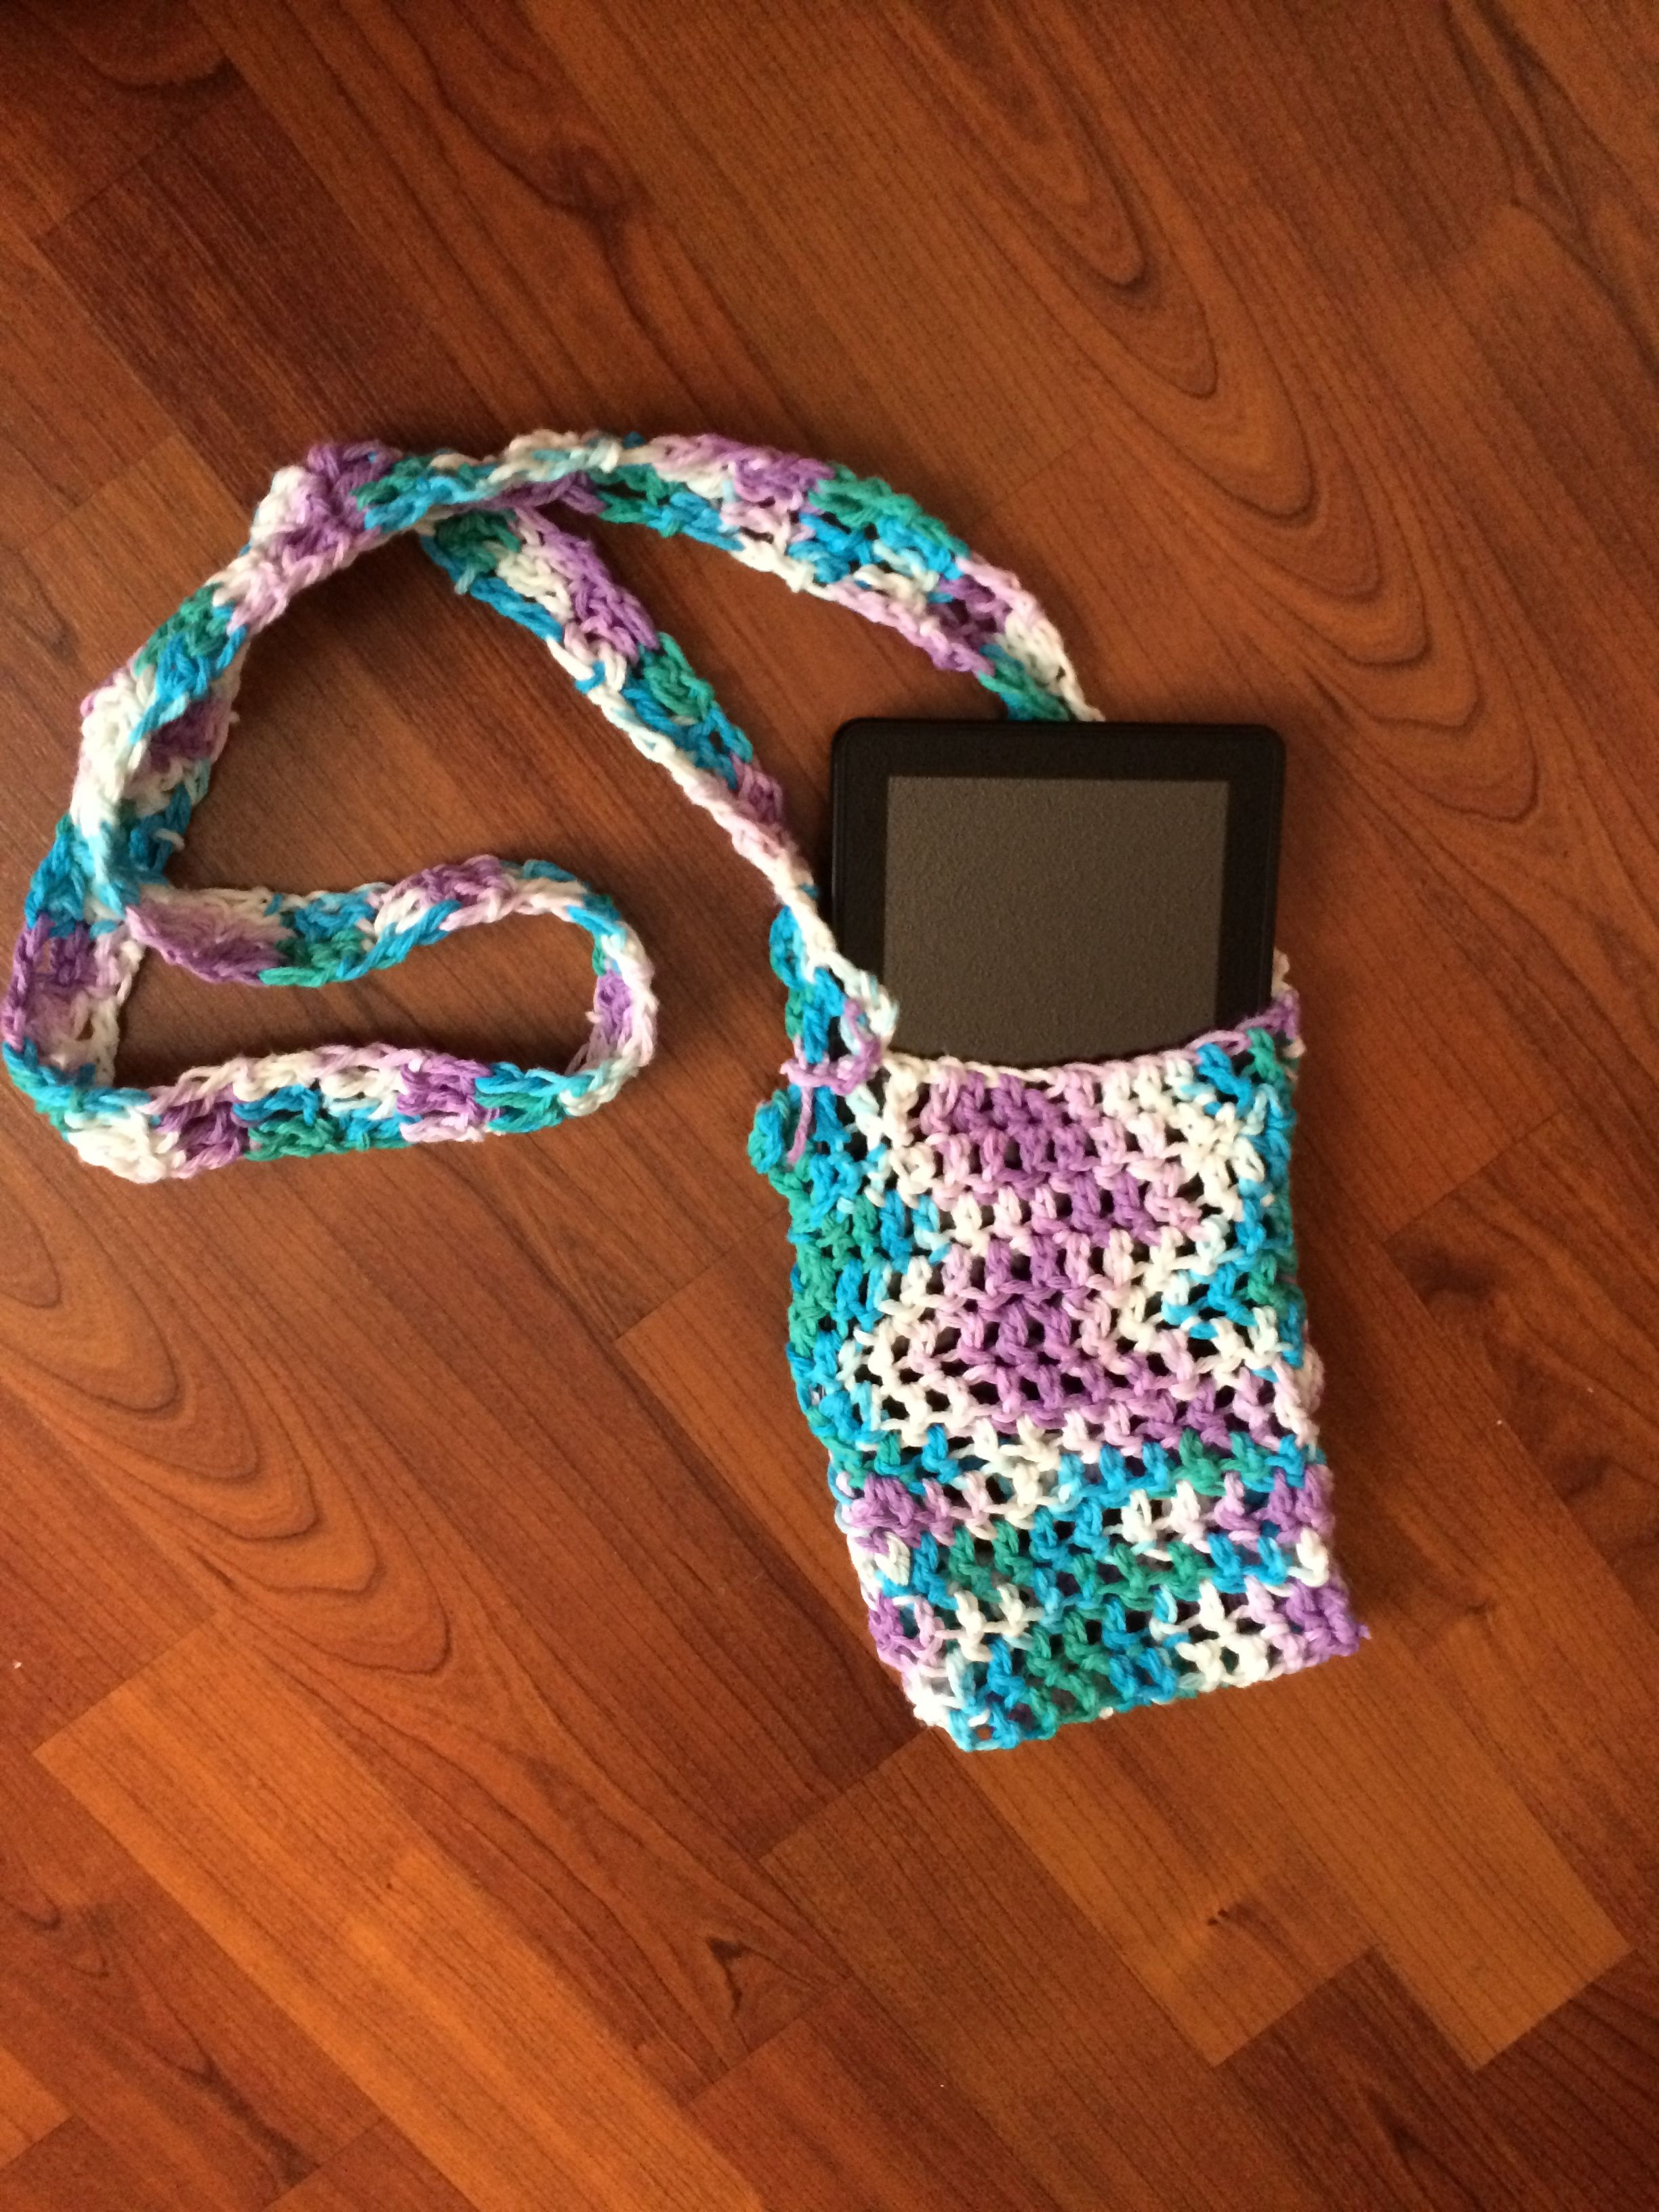 Crocheted a case for my Kindle! To make this, follow these steps: 1. Crochet a long piece of fabric, as wide a your tablet/phone and twice as long. 2. Once you are done, fold the fabric in half so it is the size of your tablet, and sew the sides together. 3. Make a strap or two and sew them to the sides. 4. Enjoy!